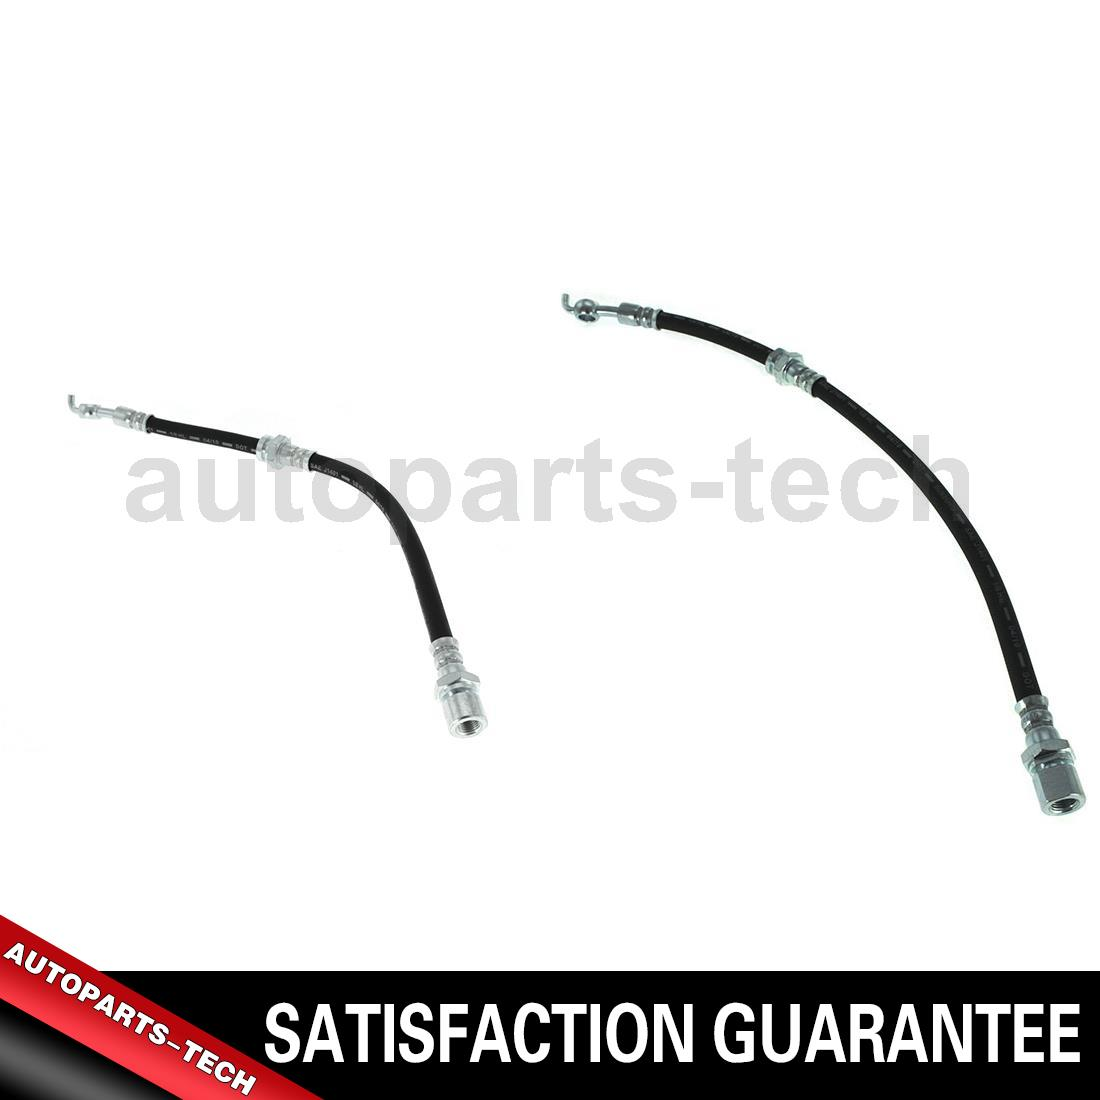 2x Centric Parts Rear Left Rear Right Brake Hydraulic Hose For Suzuki 2004 2008 Ebay